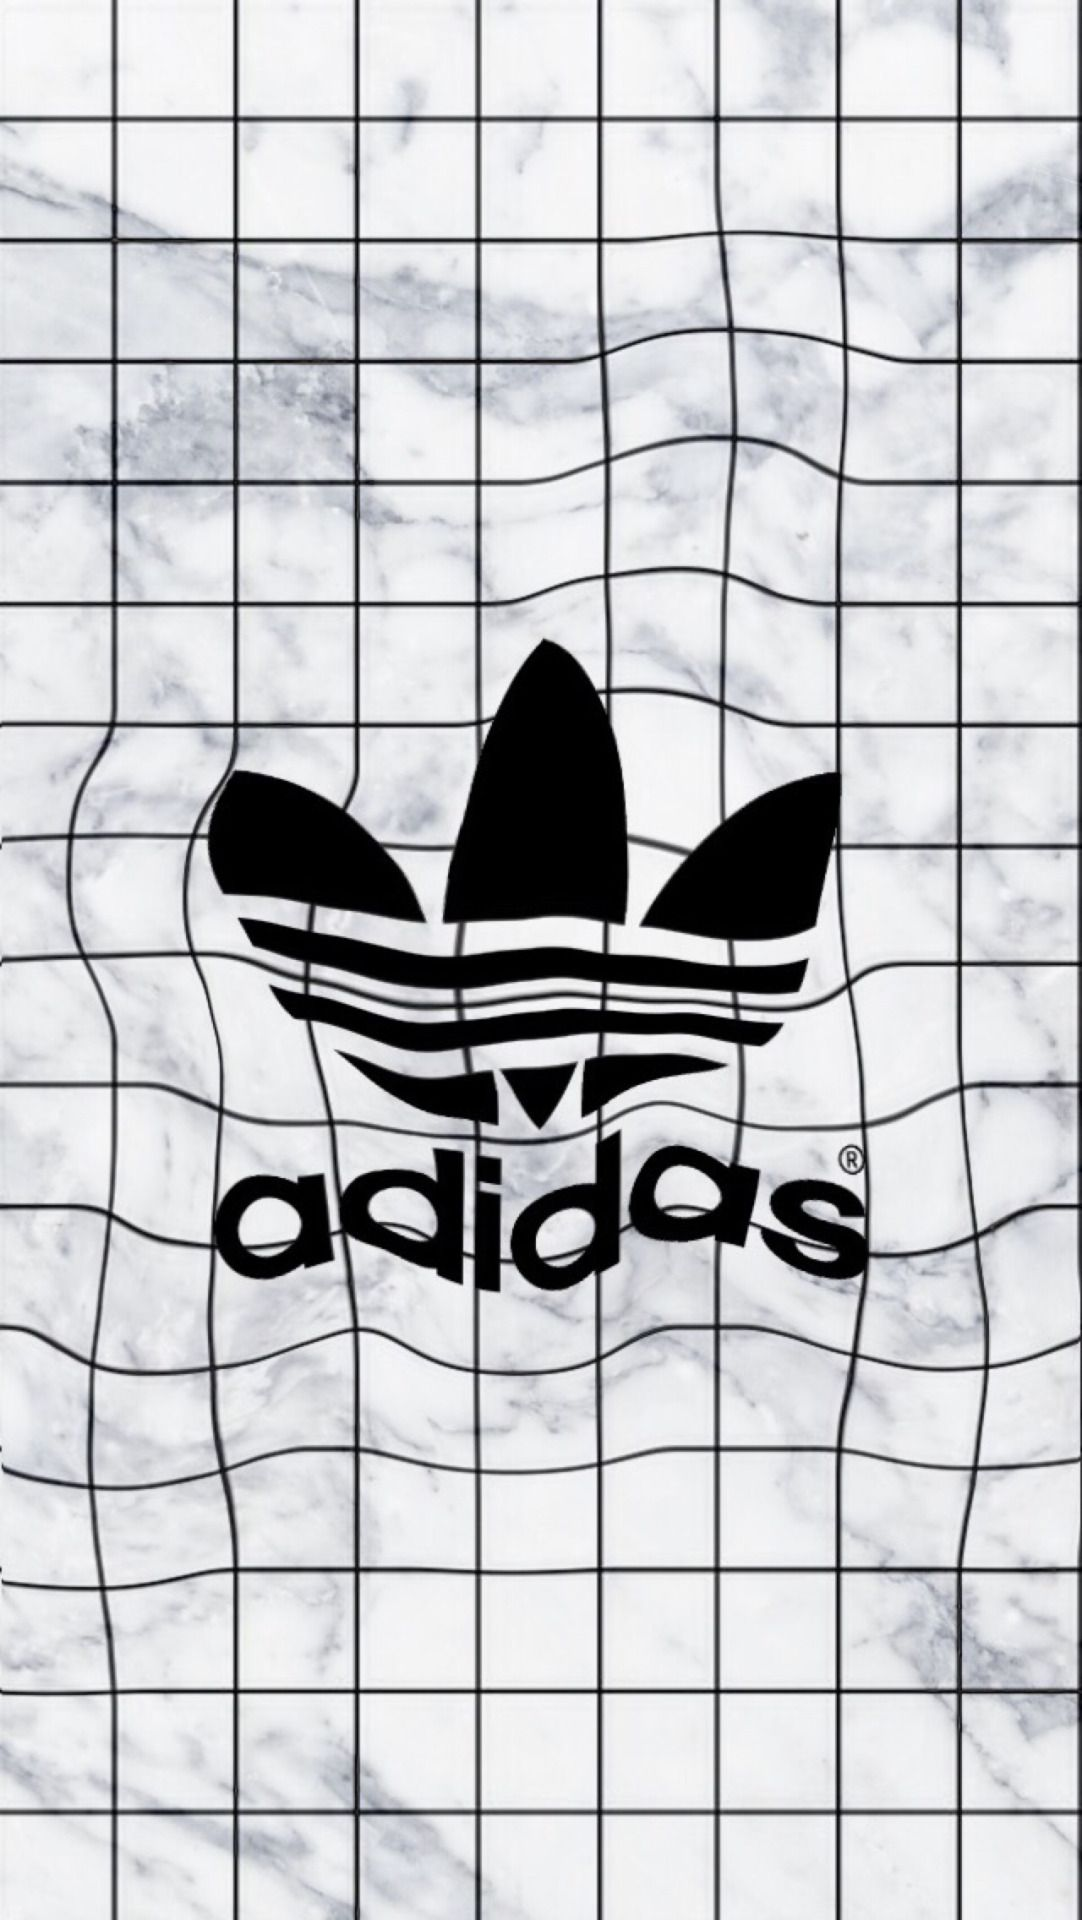 adidas marble lockscreen for iPhone 6 Like or